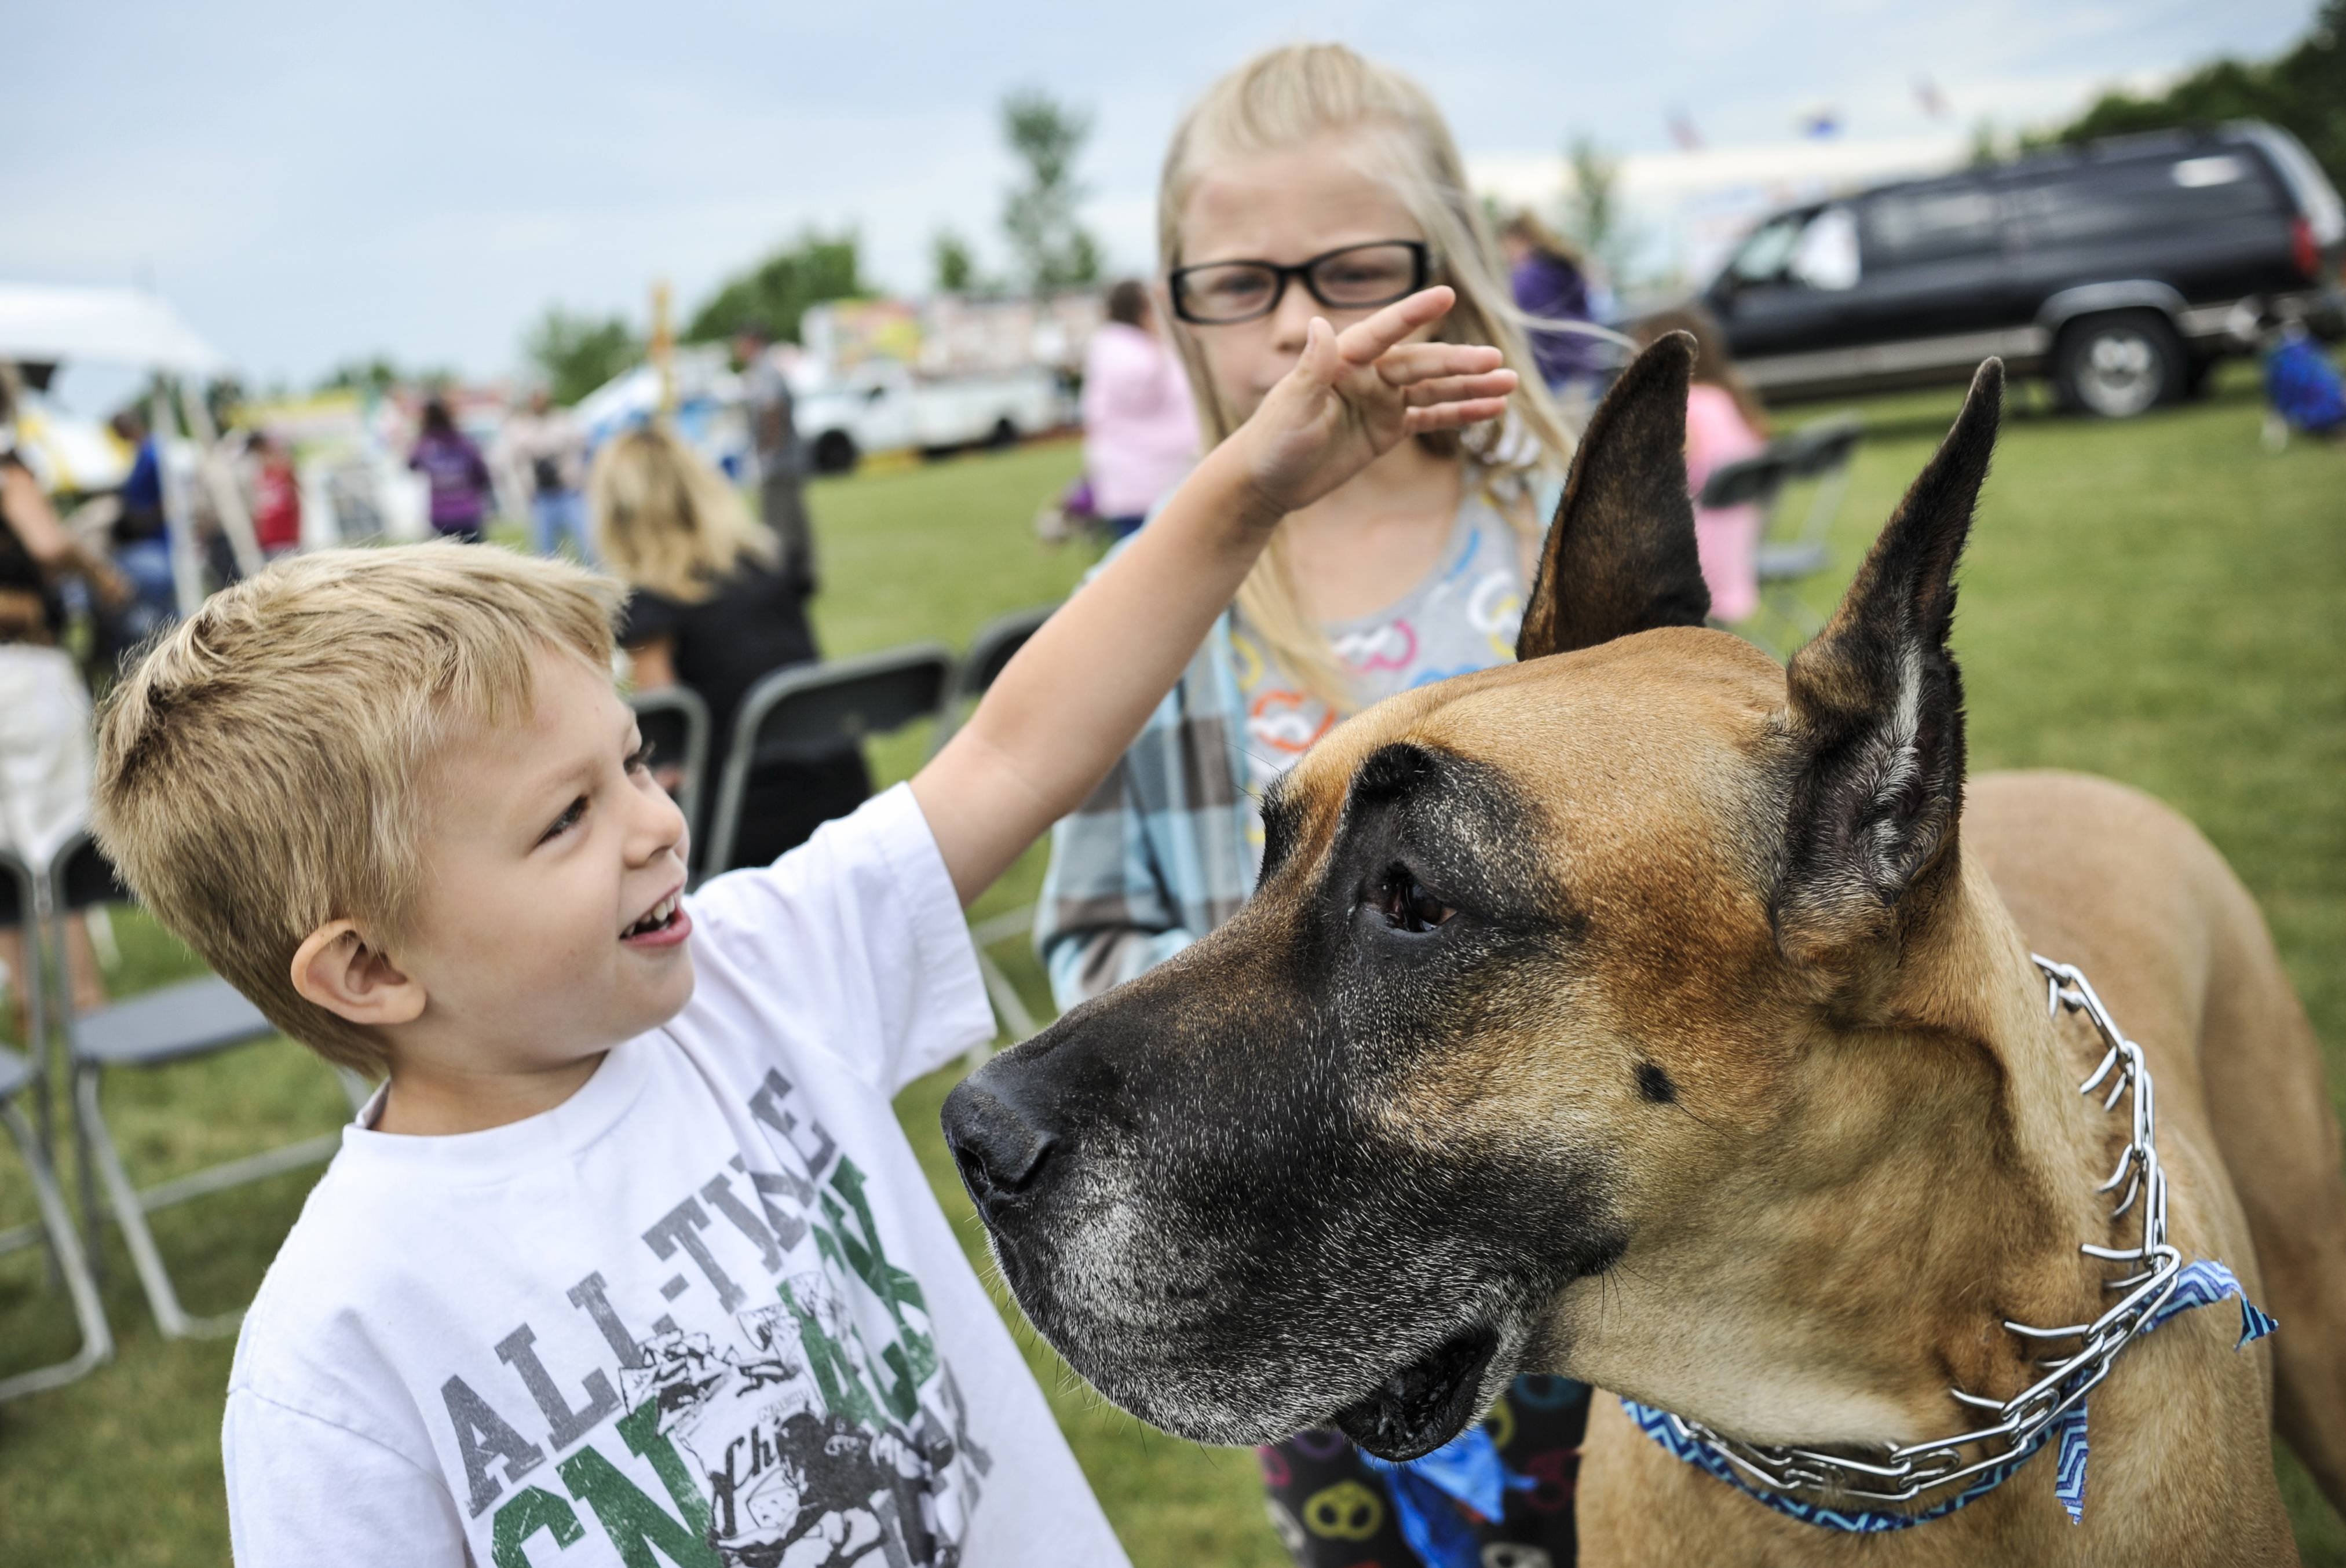 Deegan Forbes, 4 and his sister Kylie, 8, of Lake in the Hills, get their aunt's great dane Logan ready before the dog and cat show at the Algonquin Founders' Days festival in Algonquin Lakes Park on Friday. Logan won in the biggest dog category.